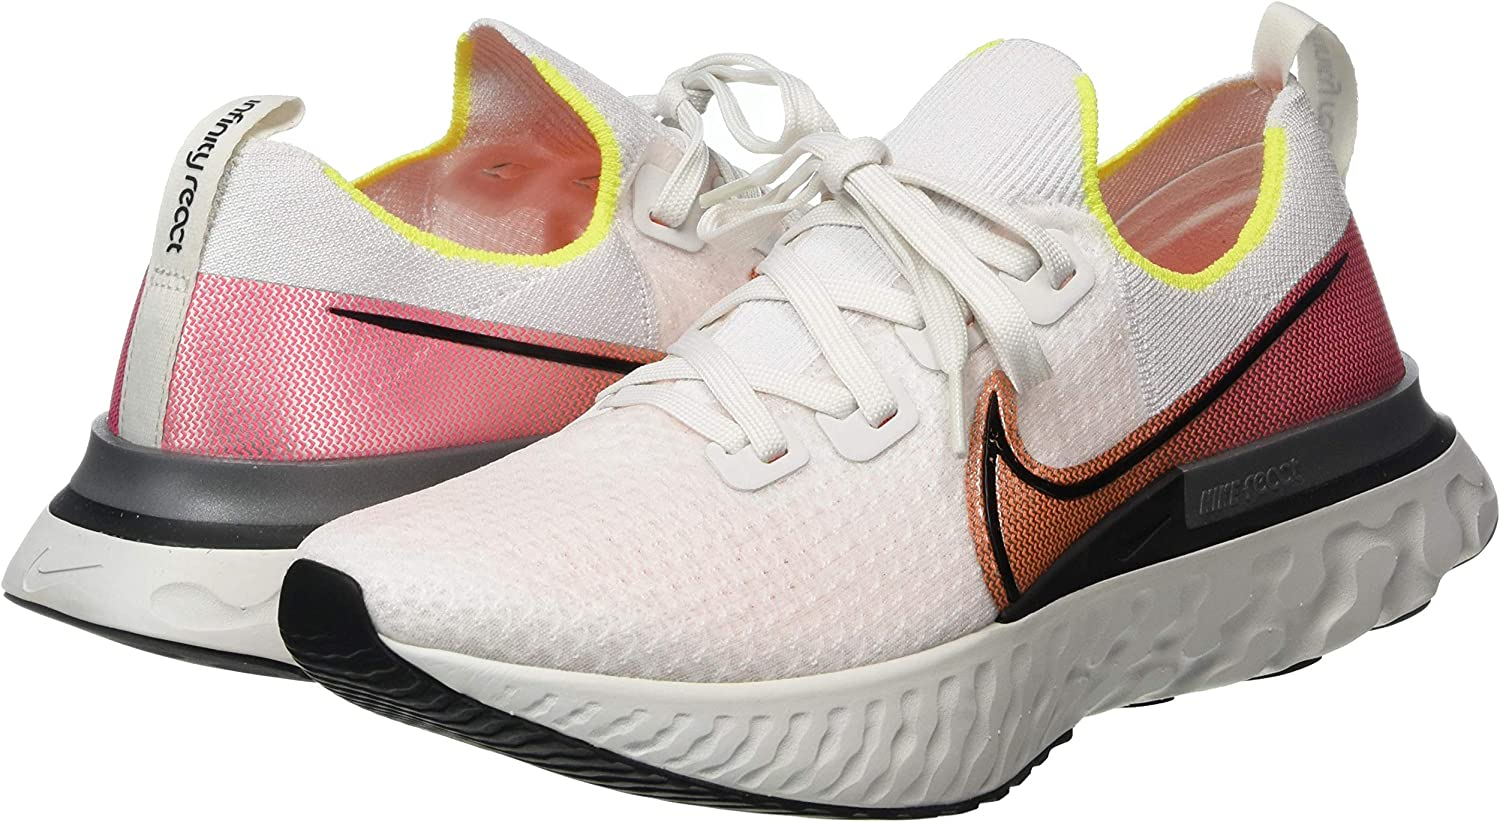 Nike React Infinity Run FK, Scarpe da Corsa Uomo: Amazon.it